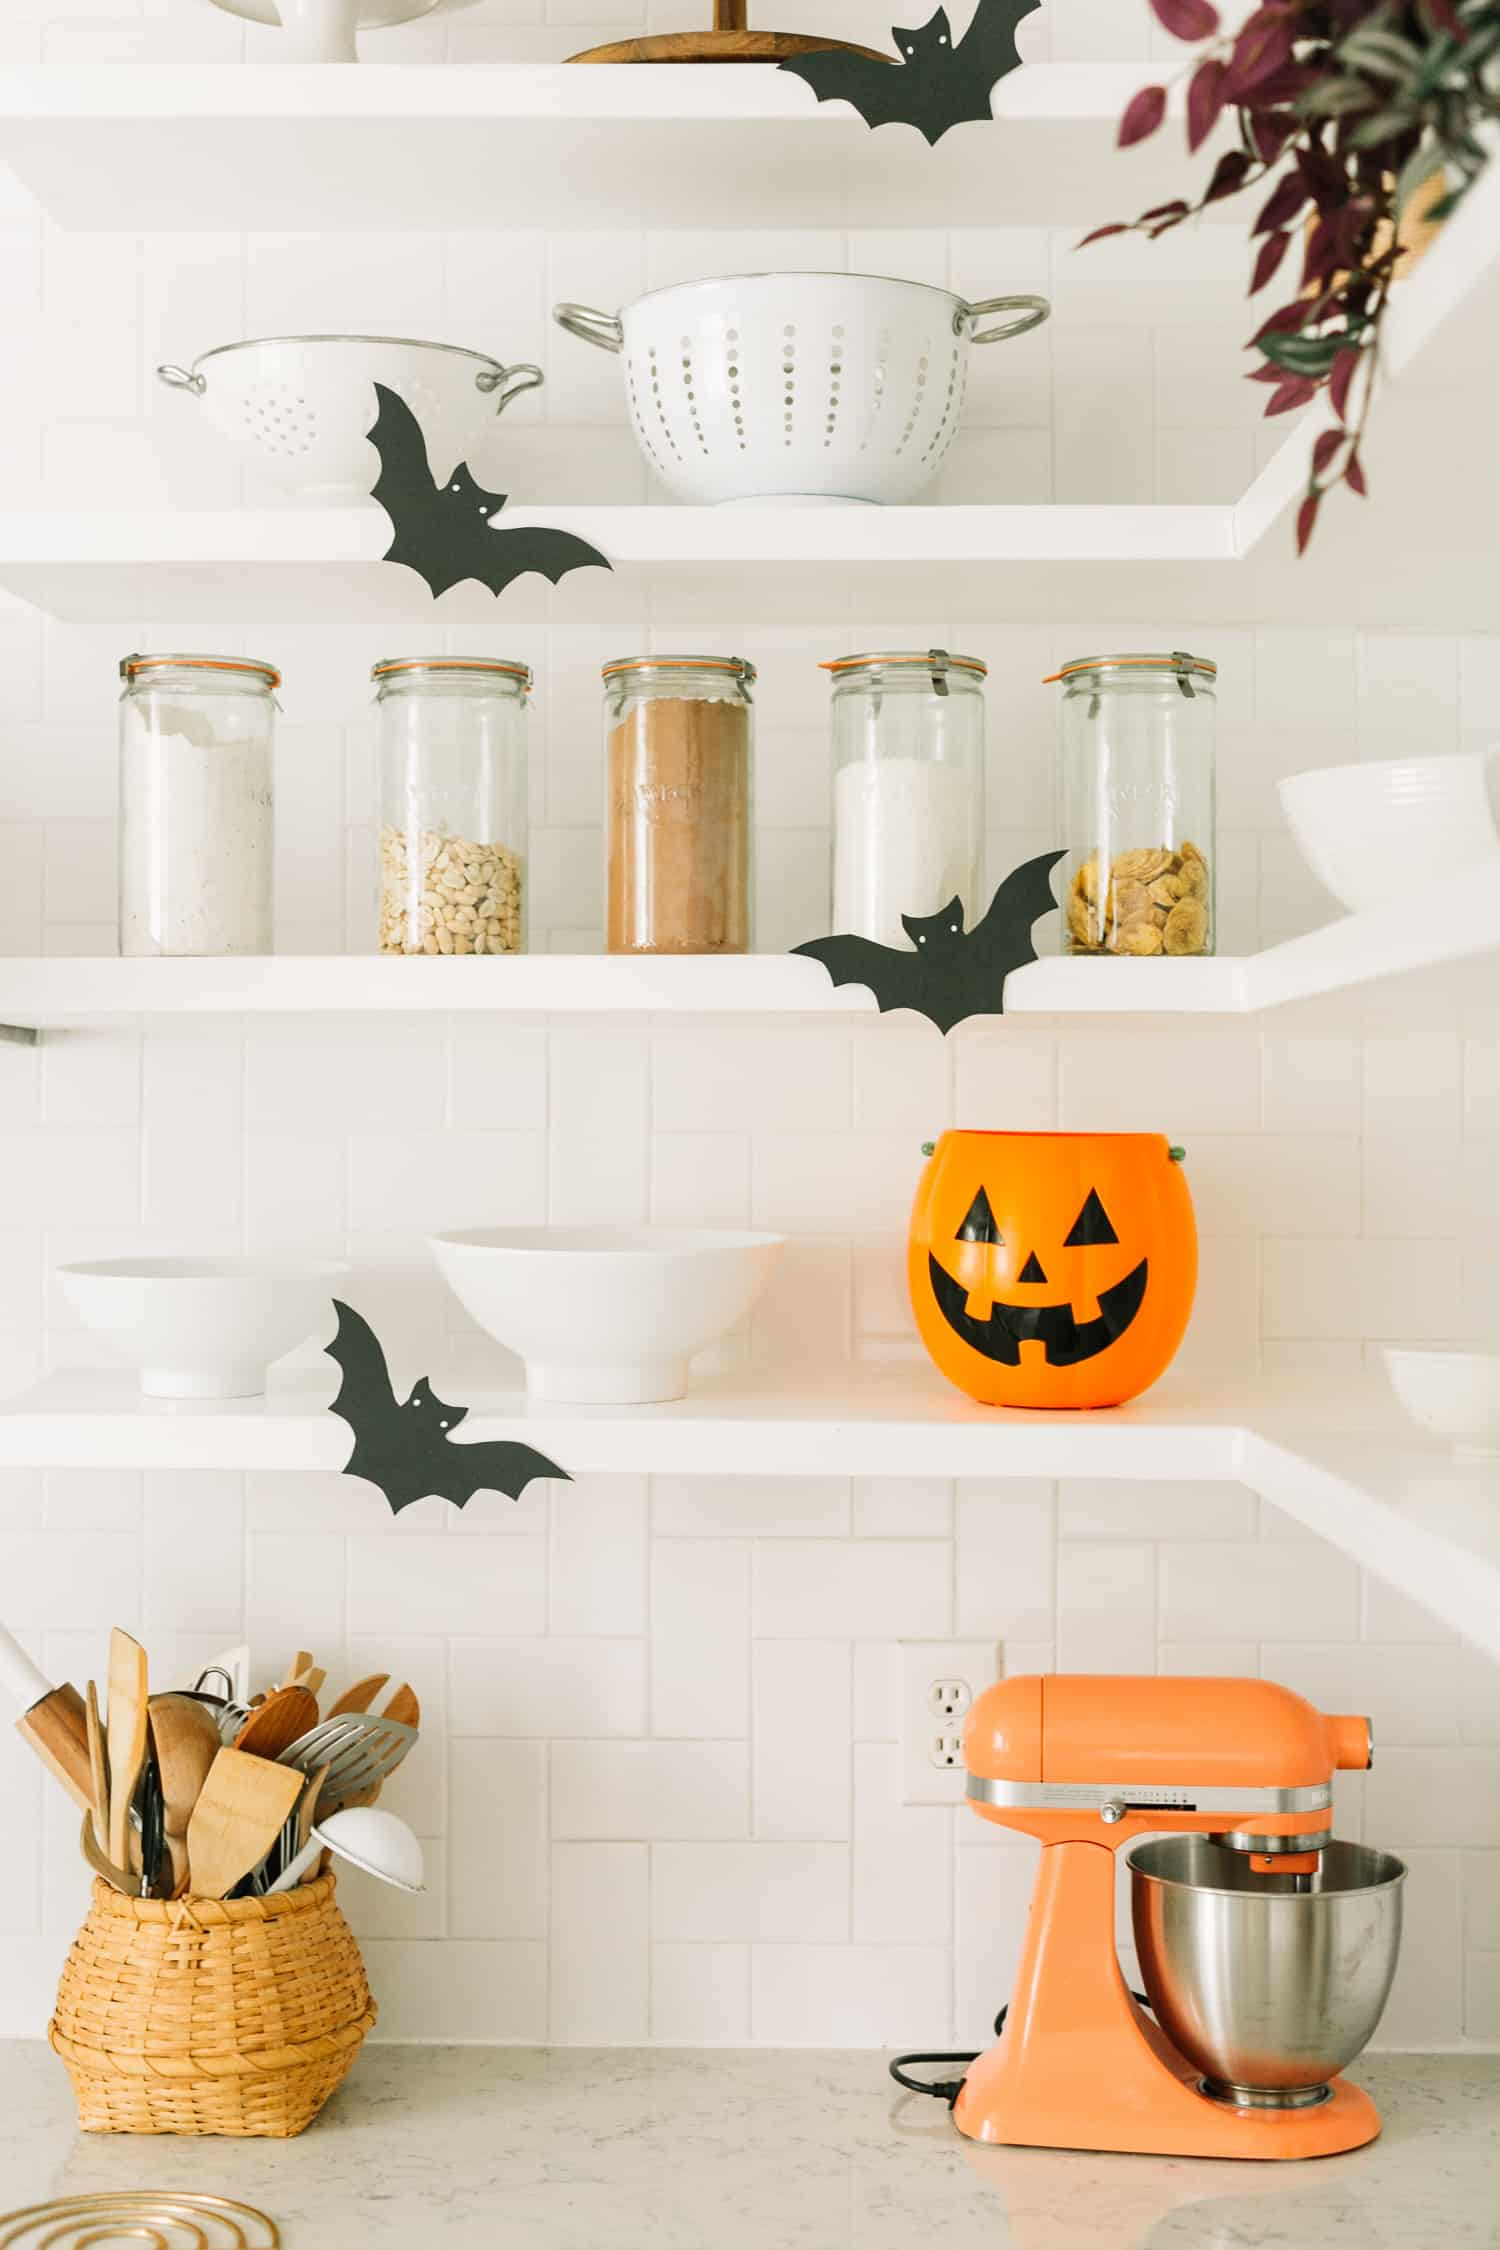 Halloween Decor Ideas For The Kitchen via A Beautiful Mess